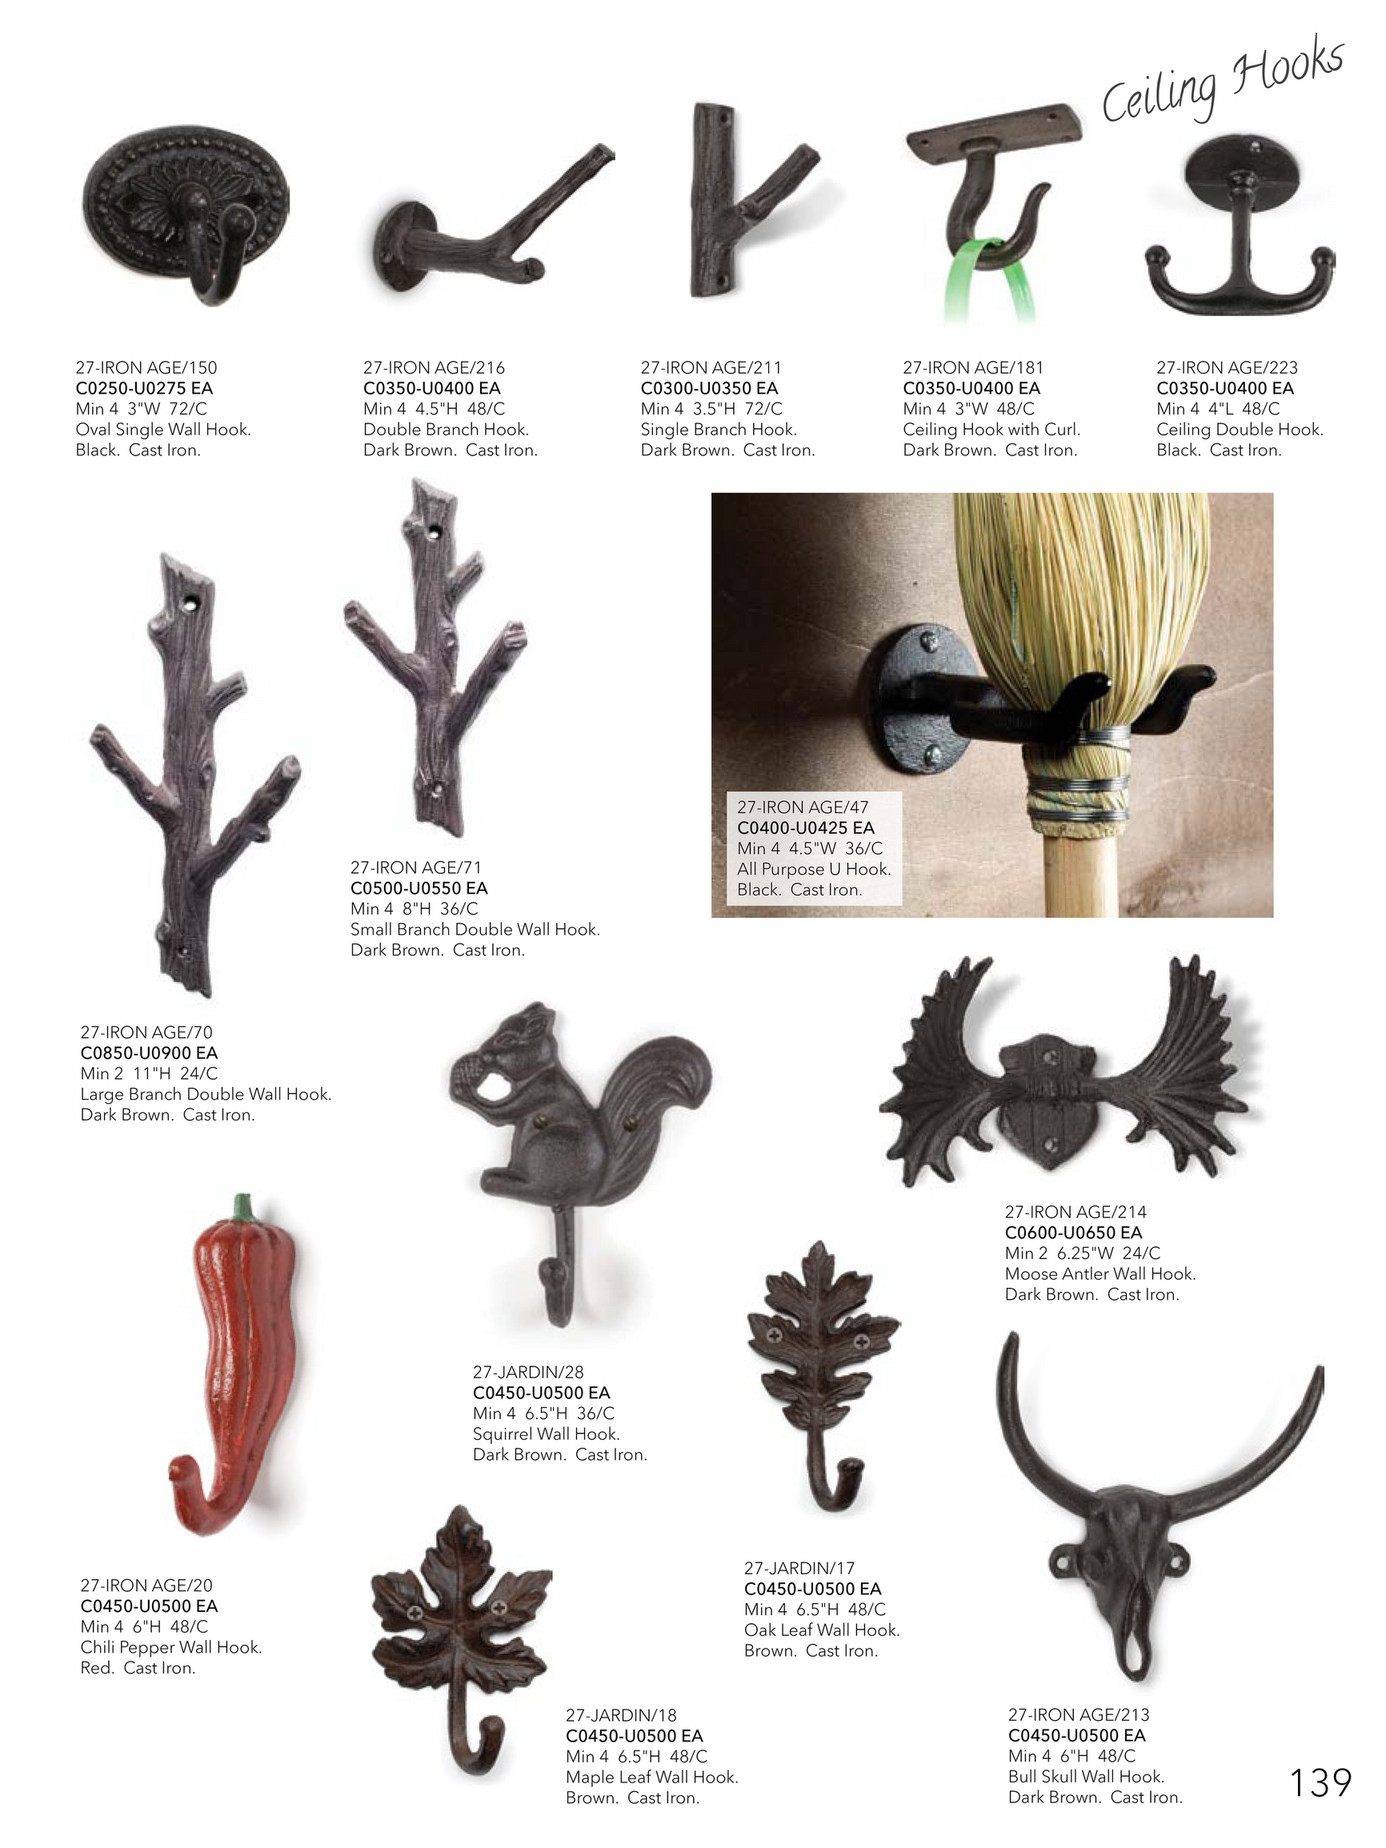 Abbott 27-Iron Age//271 Collection Antique Red Home Wall Hook